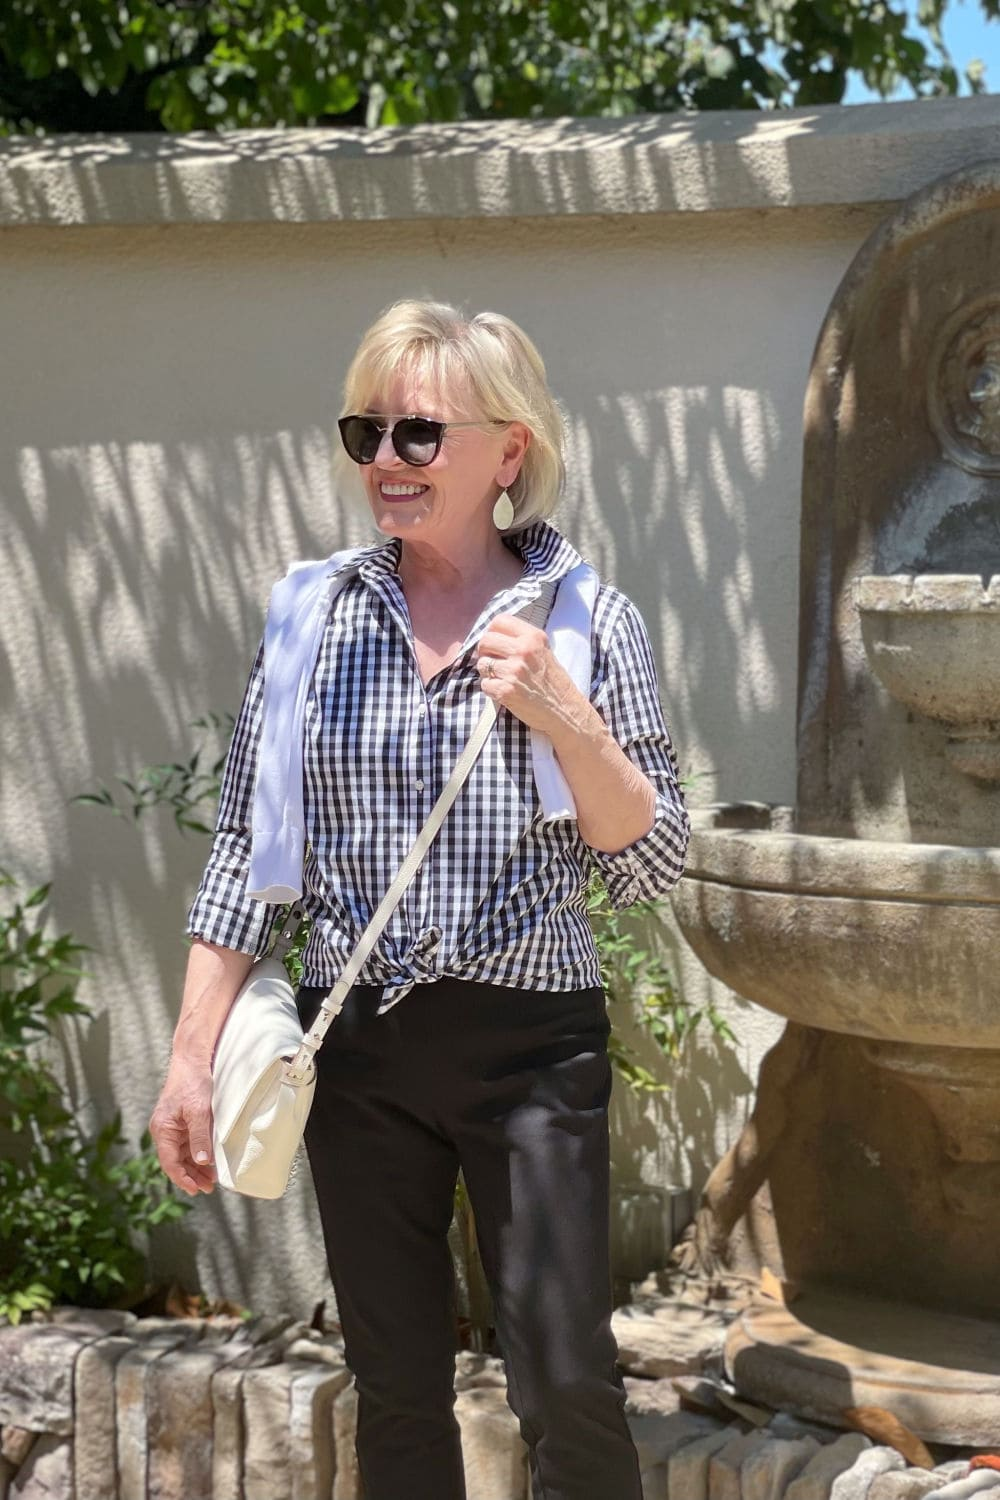 blone woman standing in front of wall fountain wearing gingham shirt